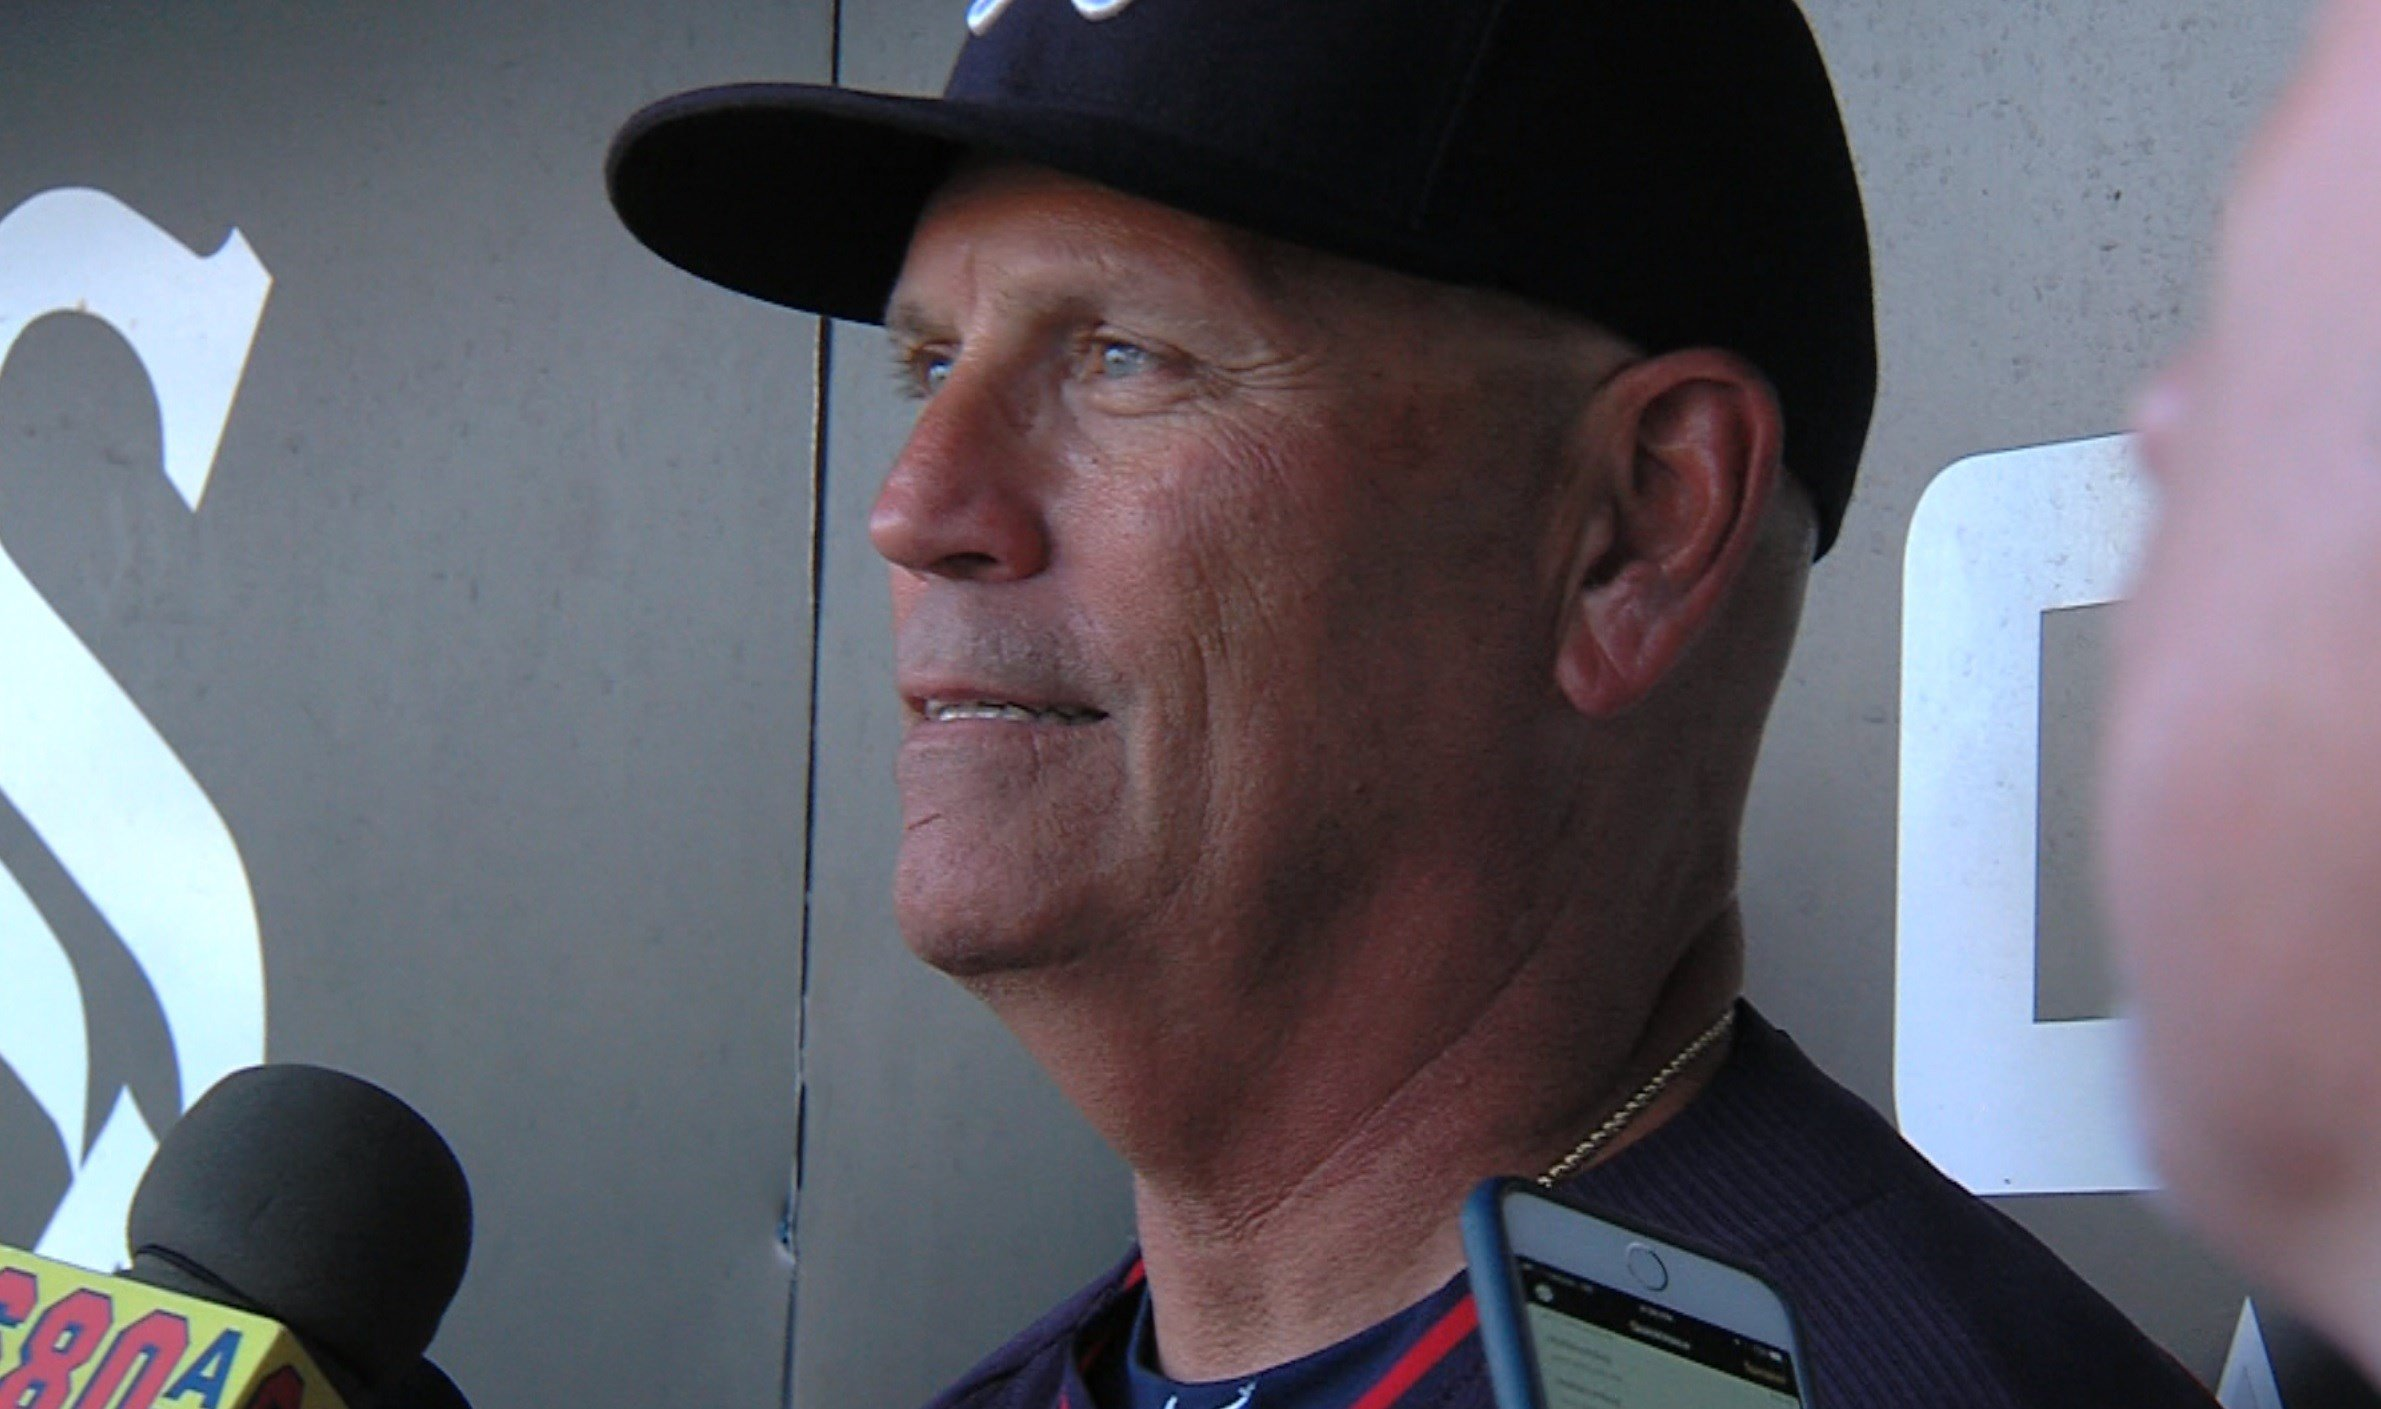 Brian Snitker's Atlanta Braves have rattled off five straight wins over the division-leading Nationals and Mets.